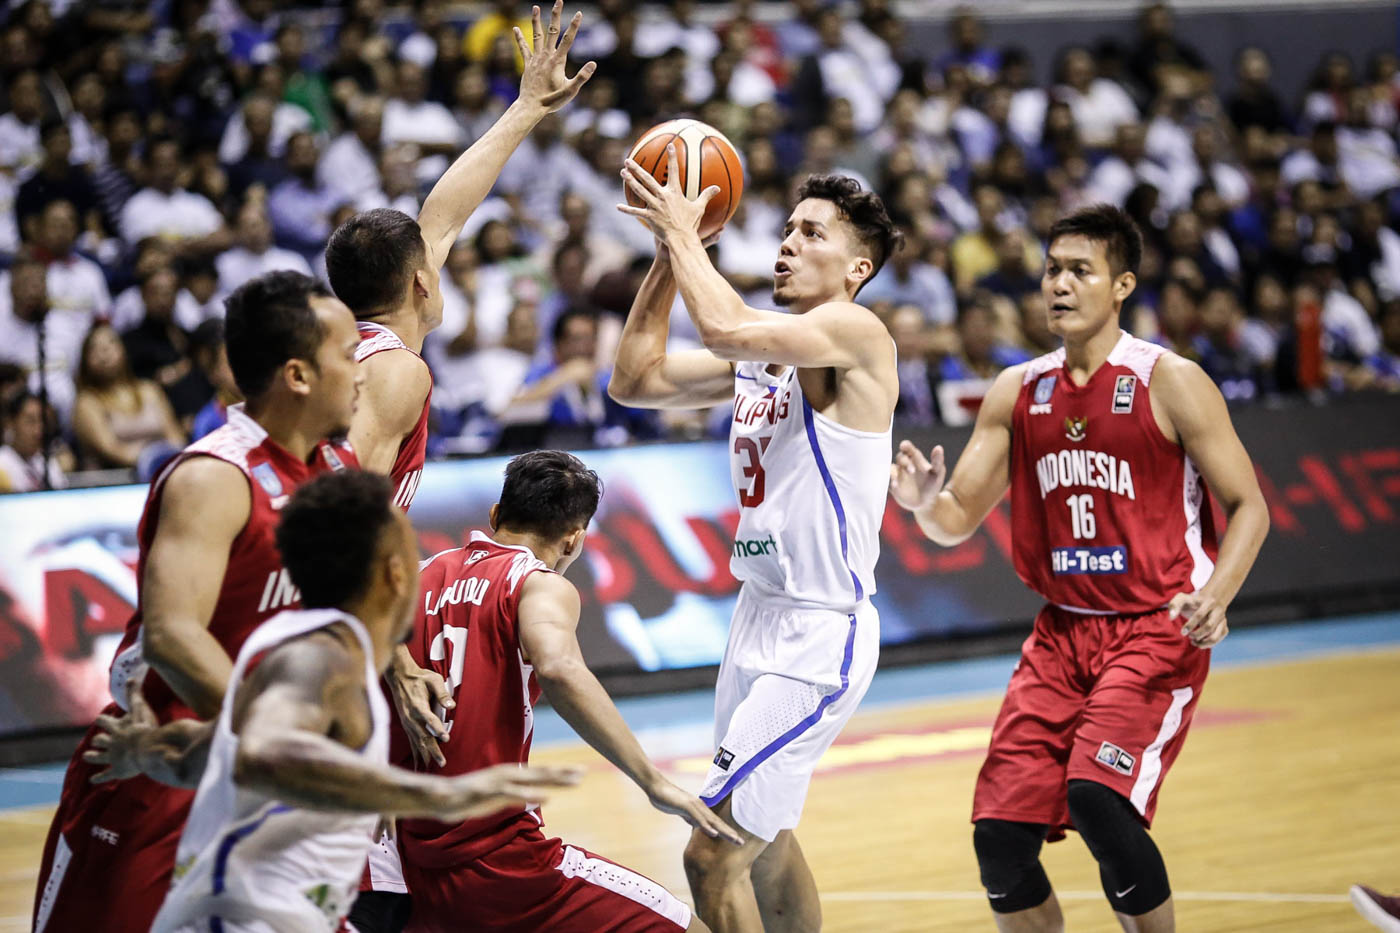 SHOOTING STROKE. Matthew Wright has his shooting stroke going in the last couple of games. Photo by Josh Albelda/Rappler